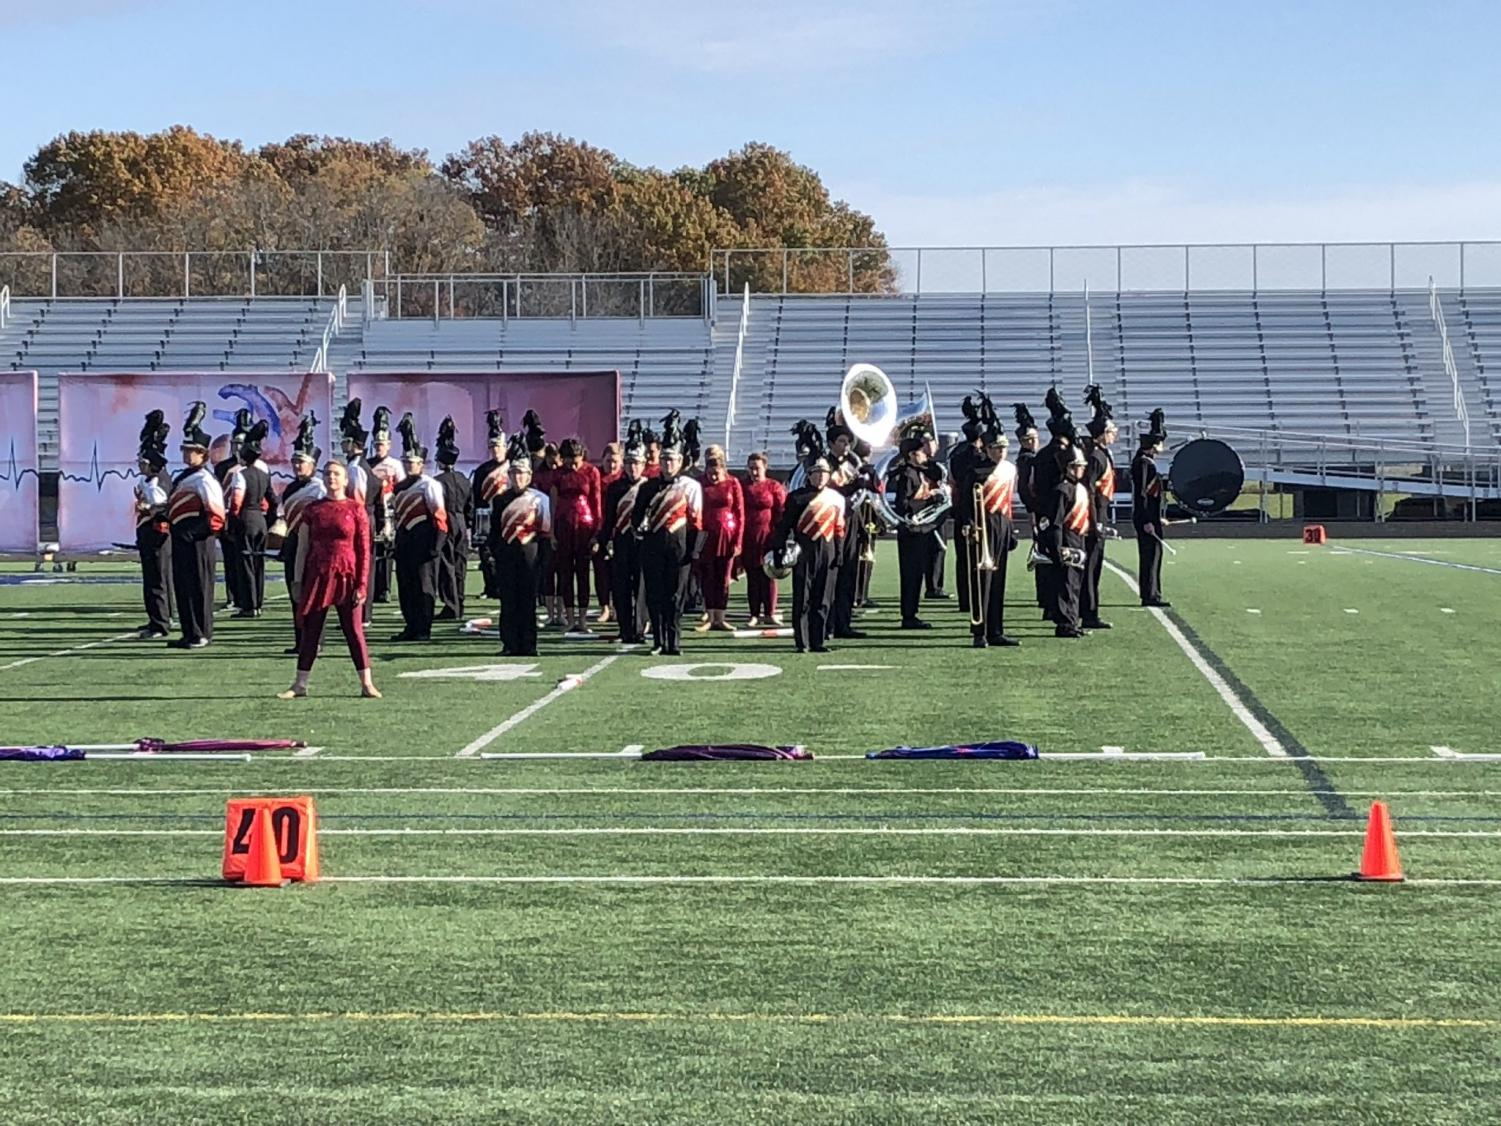 The marching band performing at OMEA State Marching Band Competition last Saturday.  (Source: Christopher Saiben, @CESaiben on Twitter)